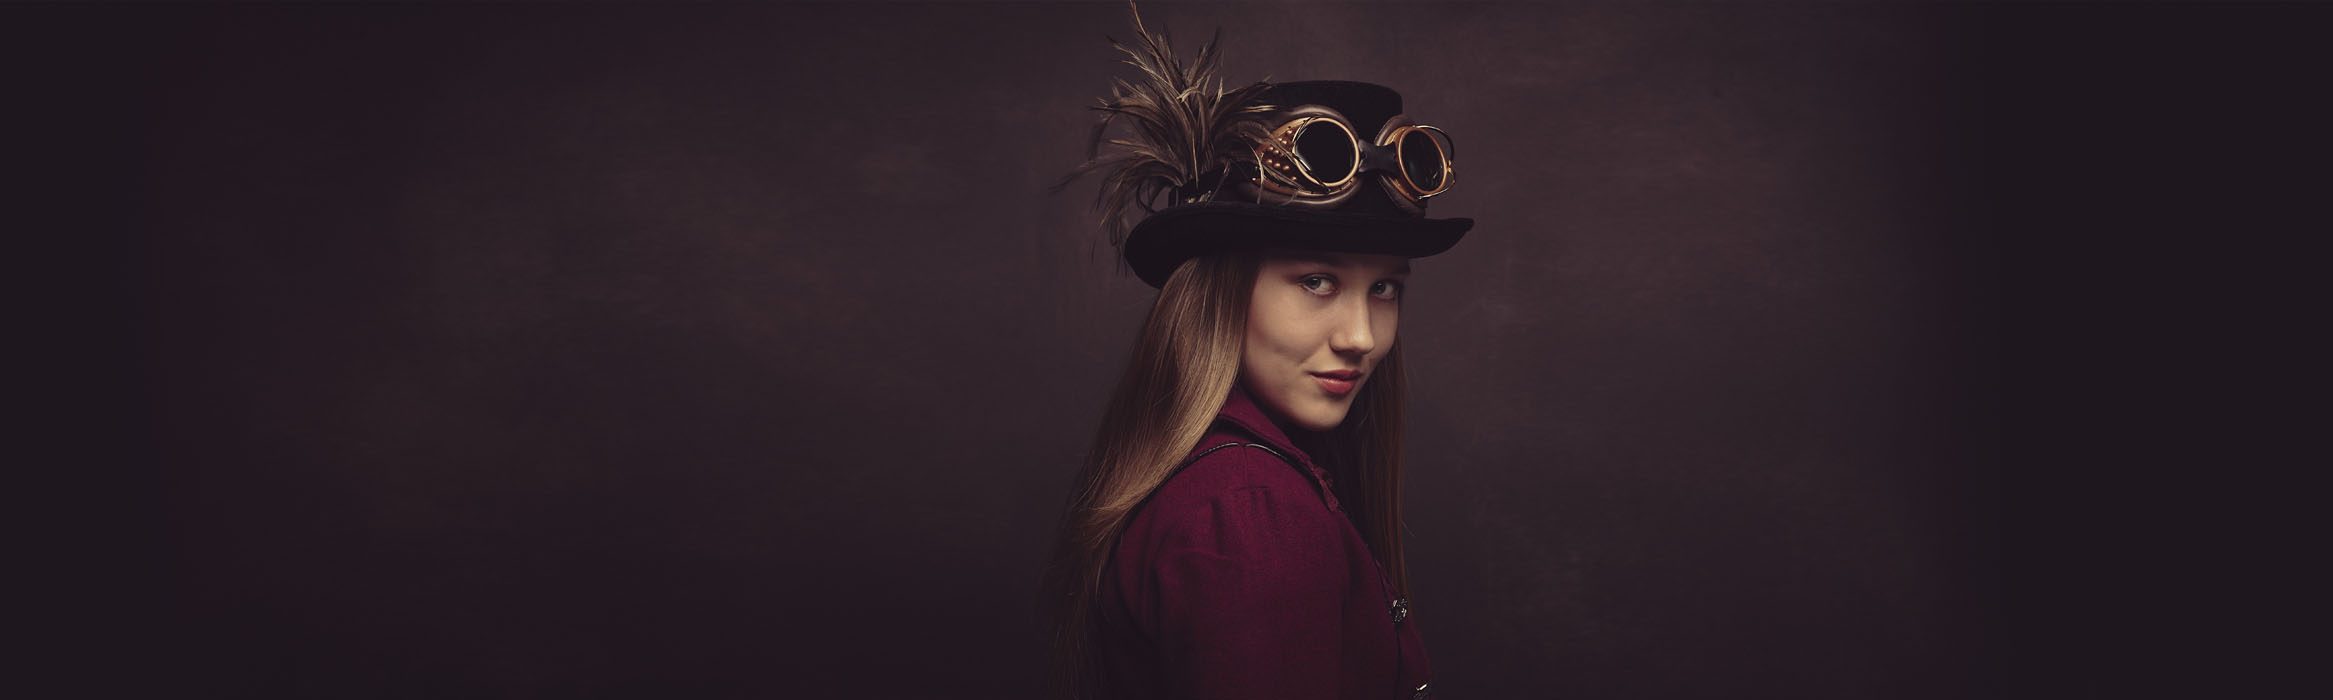 Child steampunk portraits